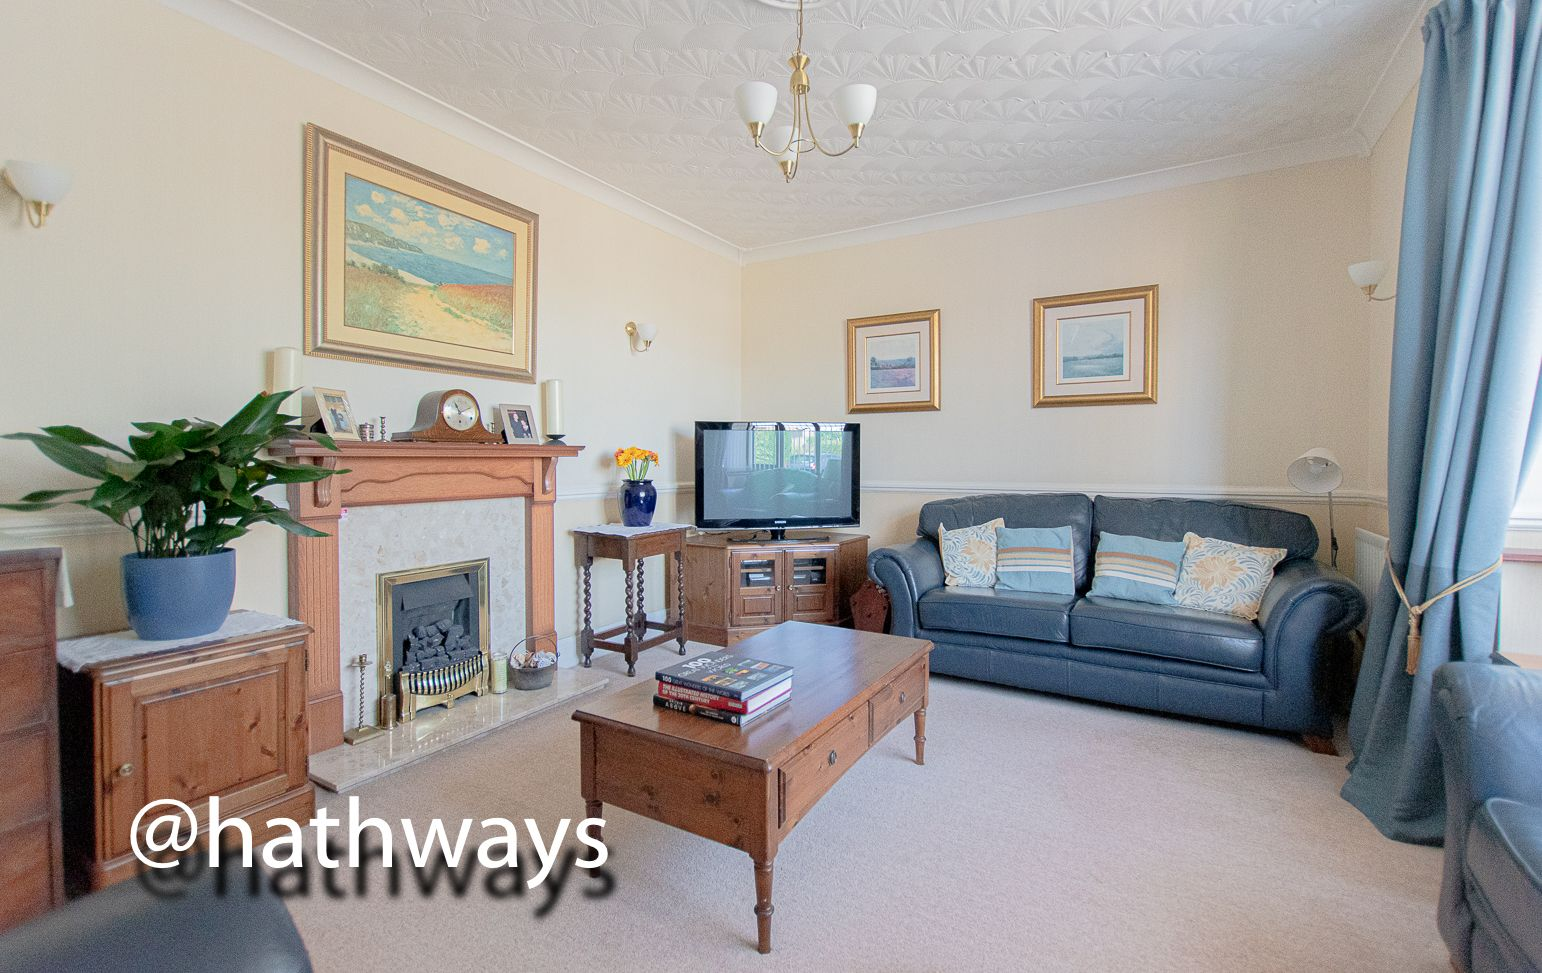 4 bed house for sale in Ashford Close South 6